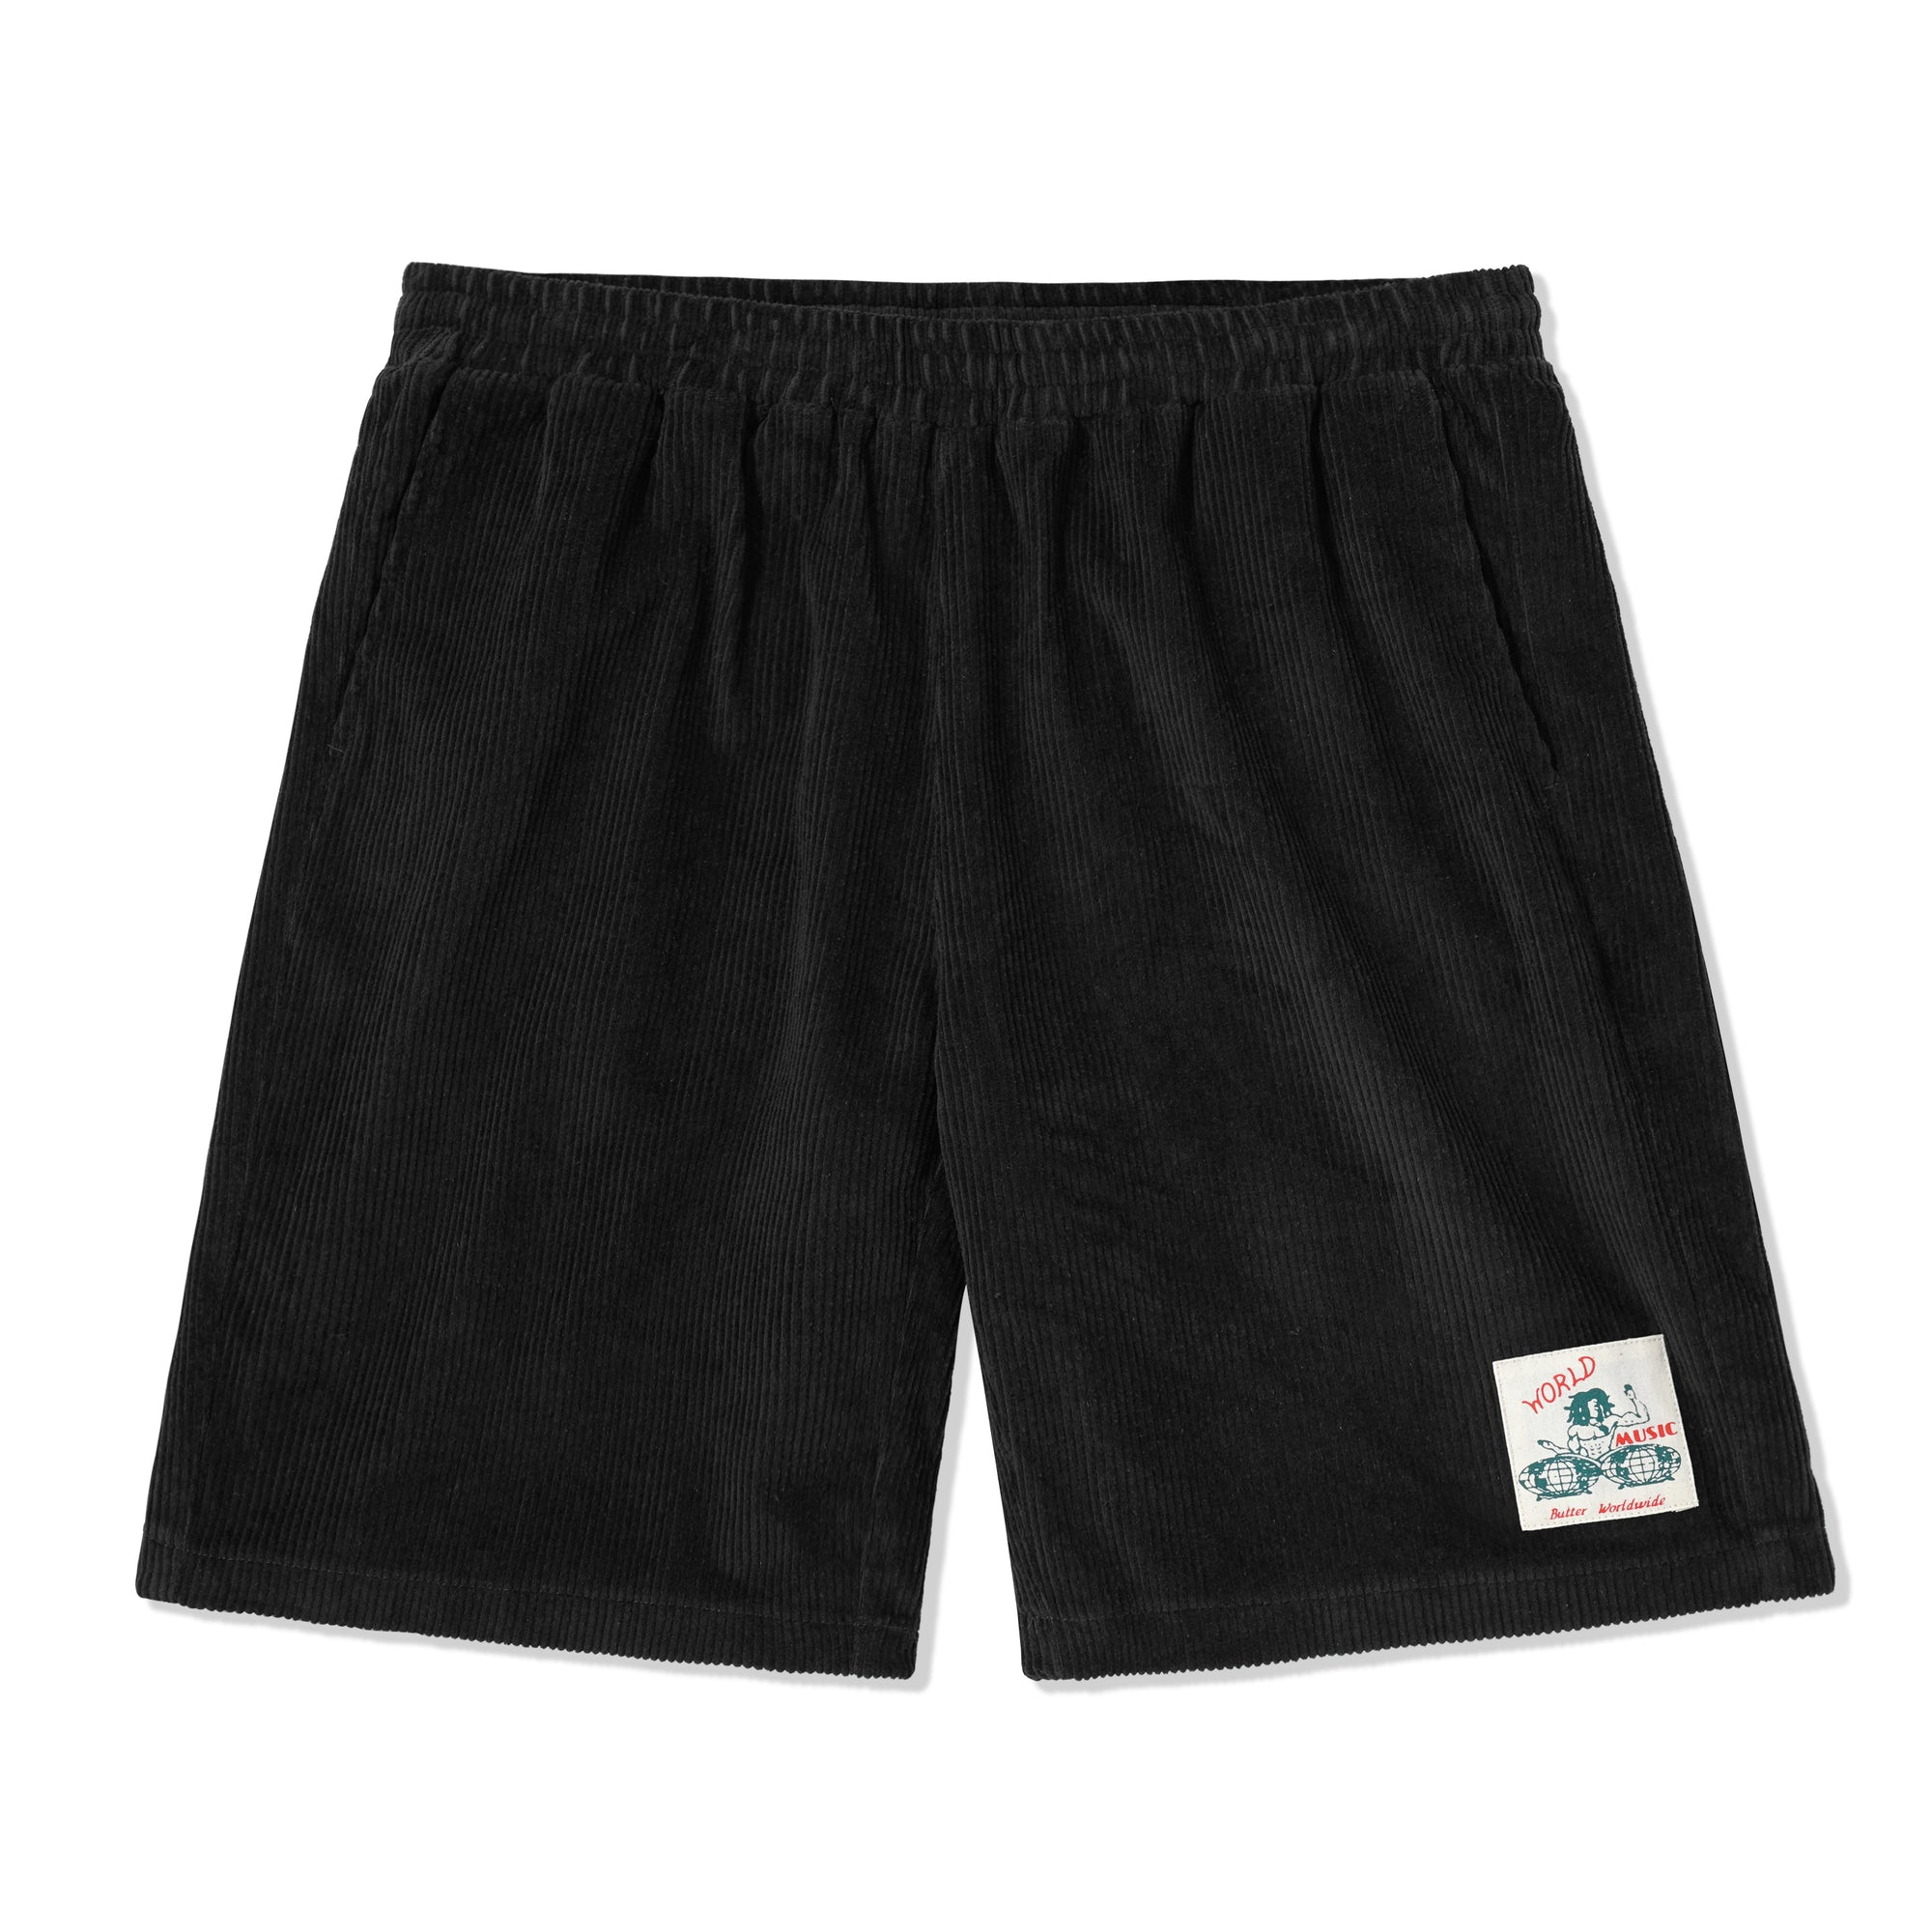 Butter Goods World Music Shorts Product Photo #1